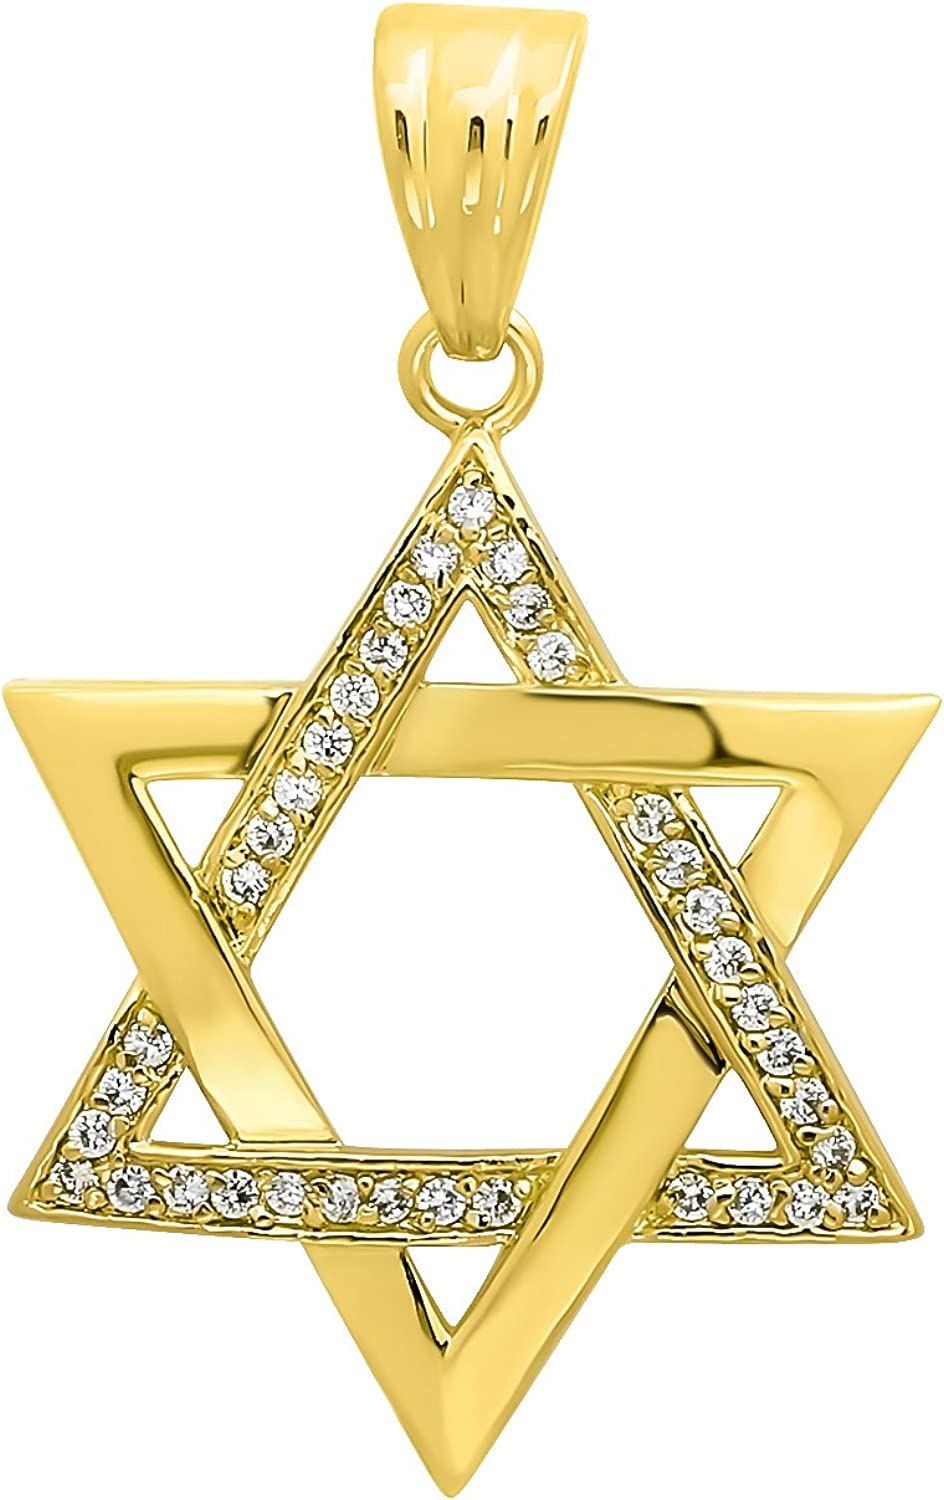 The Sale SALE% OFF Bling Quantity limited Factory 40mm 14k Gold Star David Plated Cubi of Jewish